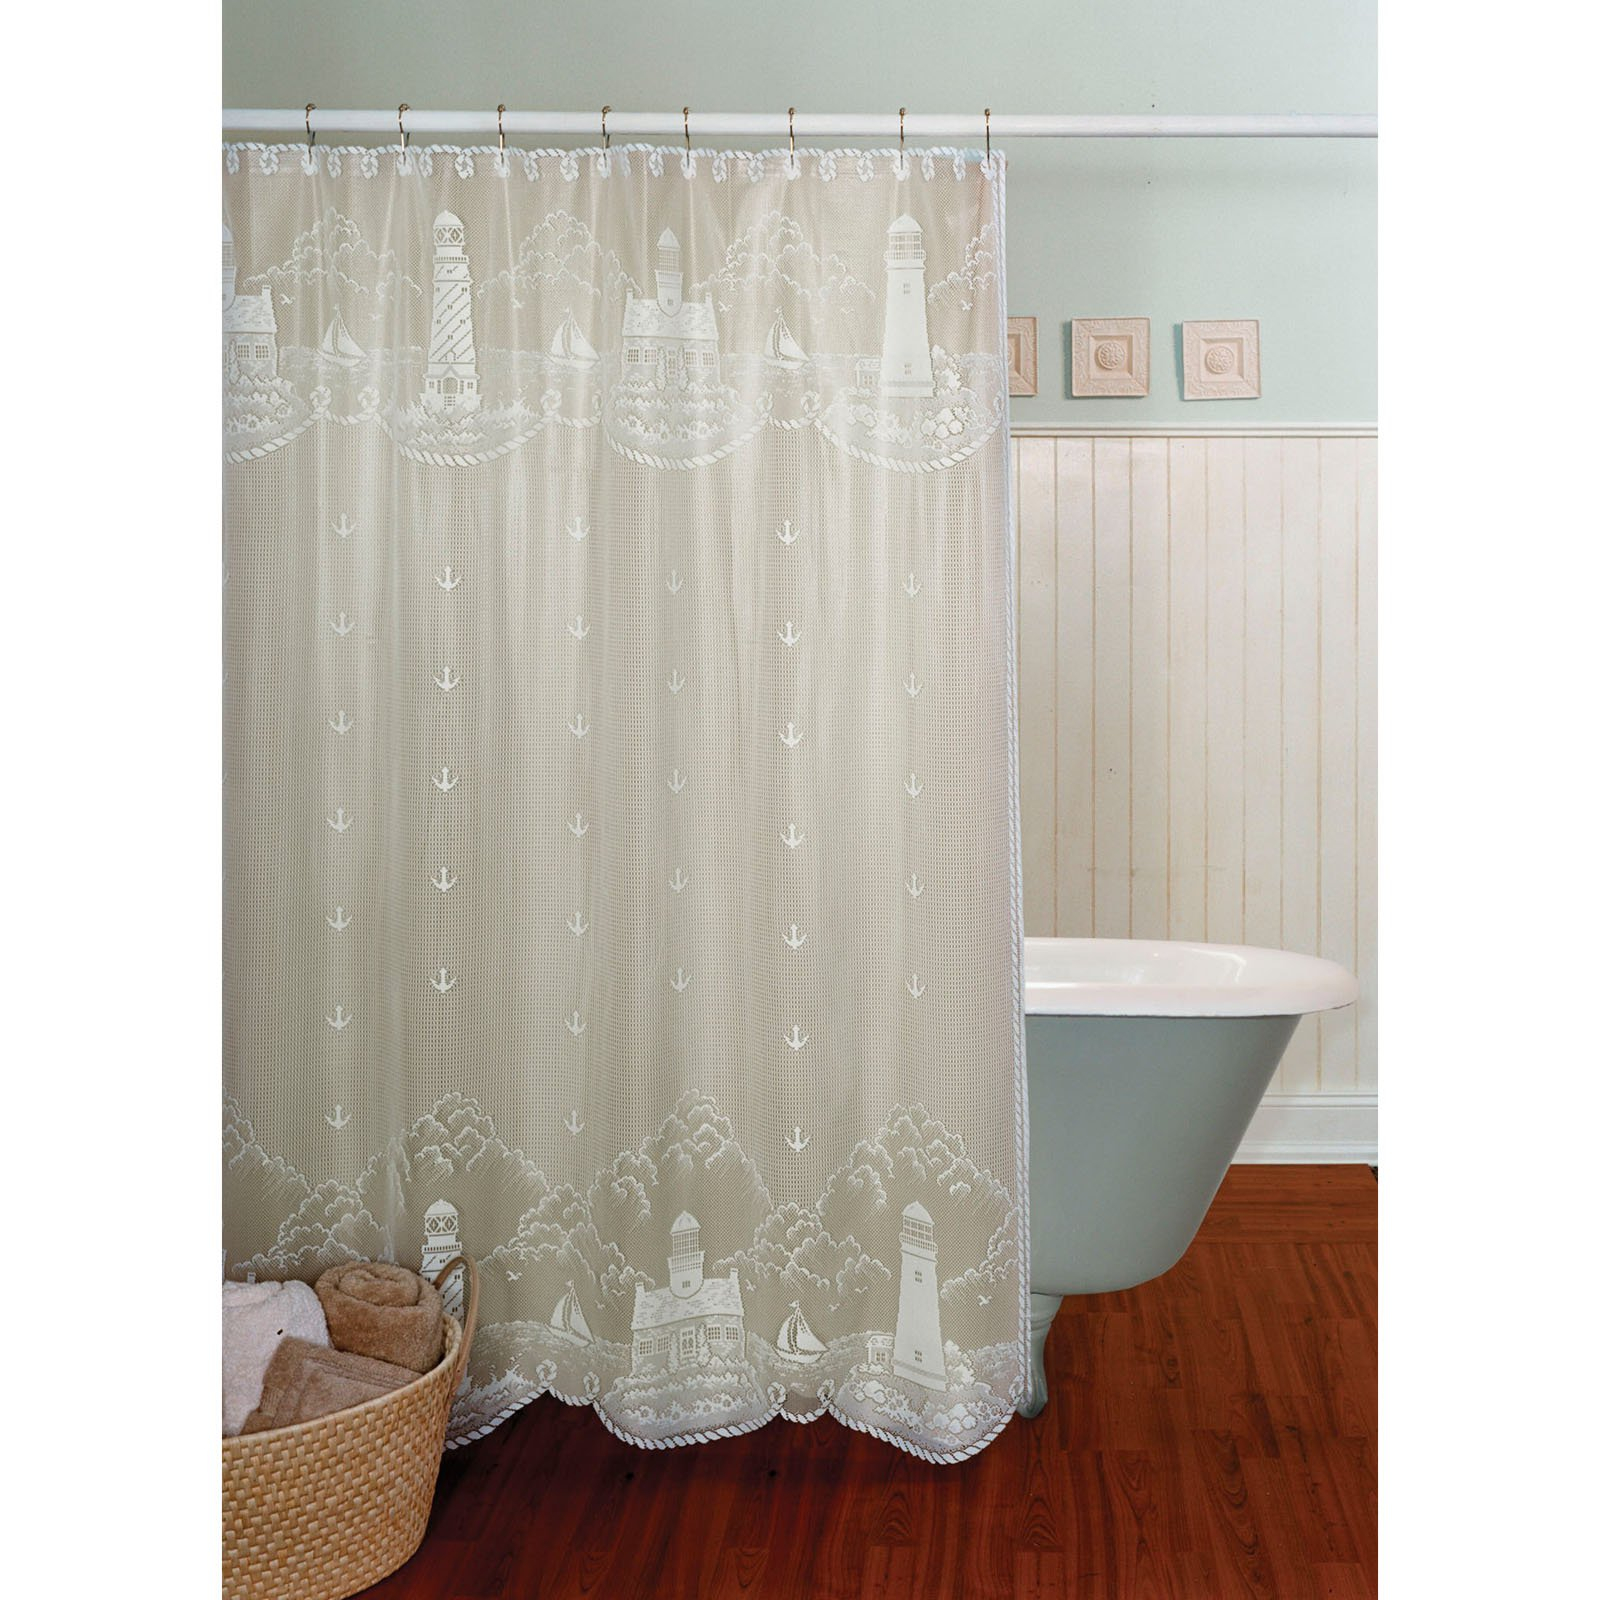 Luxury Shower Curtains Fabric Shower Curtains With Unique Luxury inside size 1600 X 1600